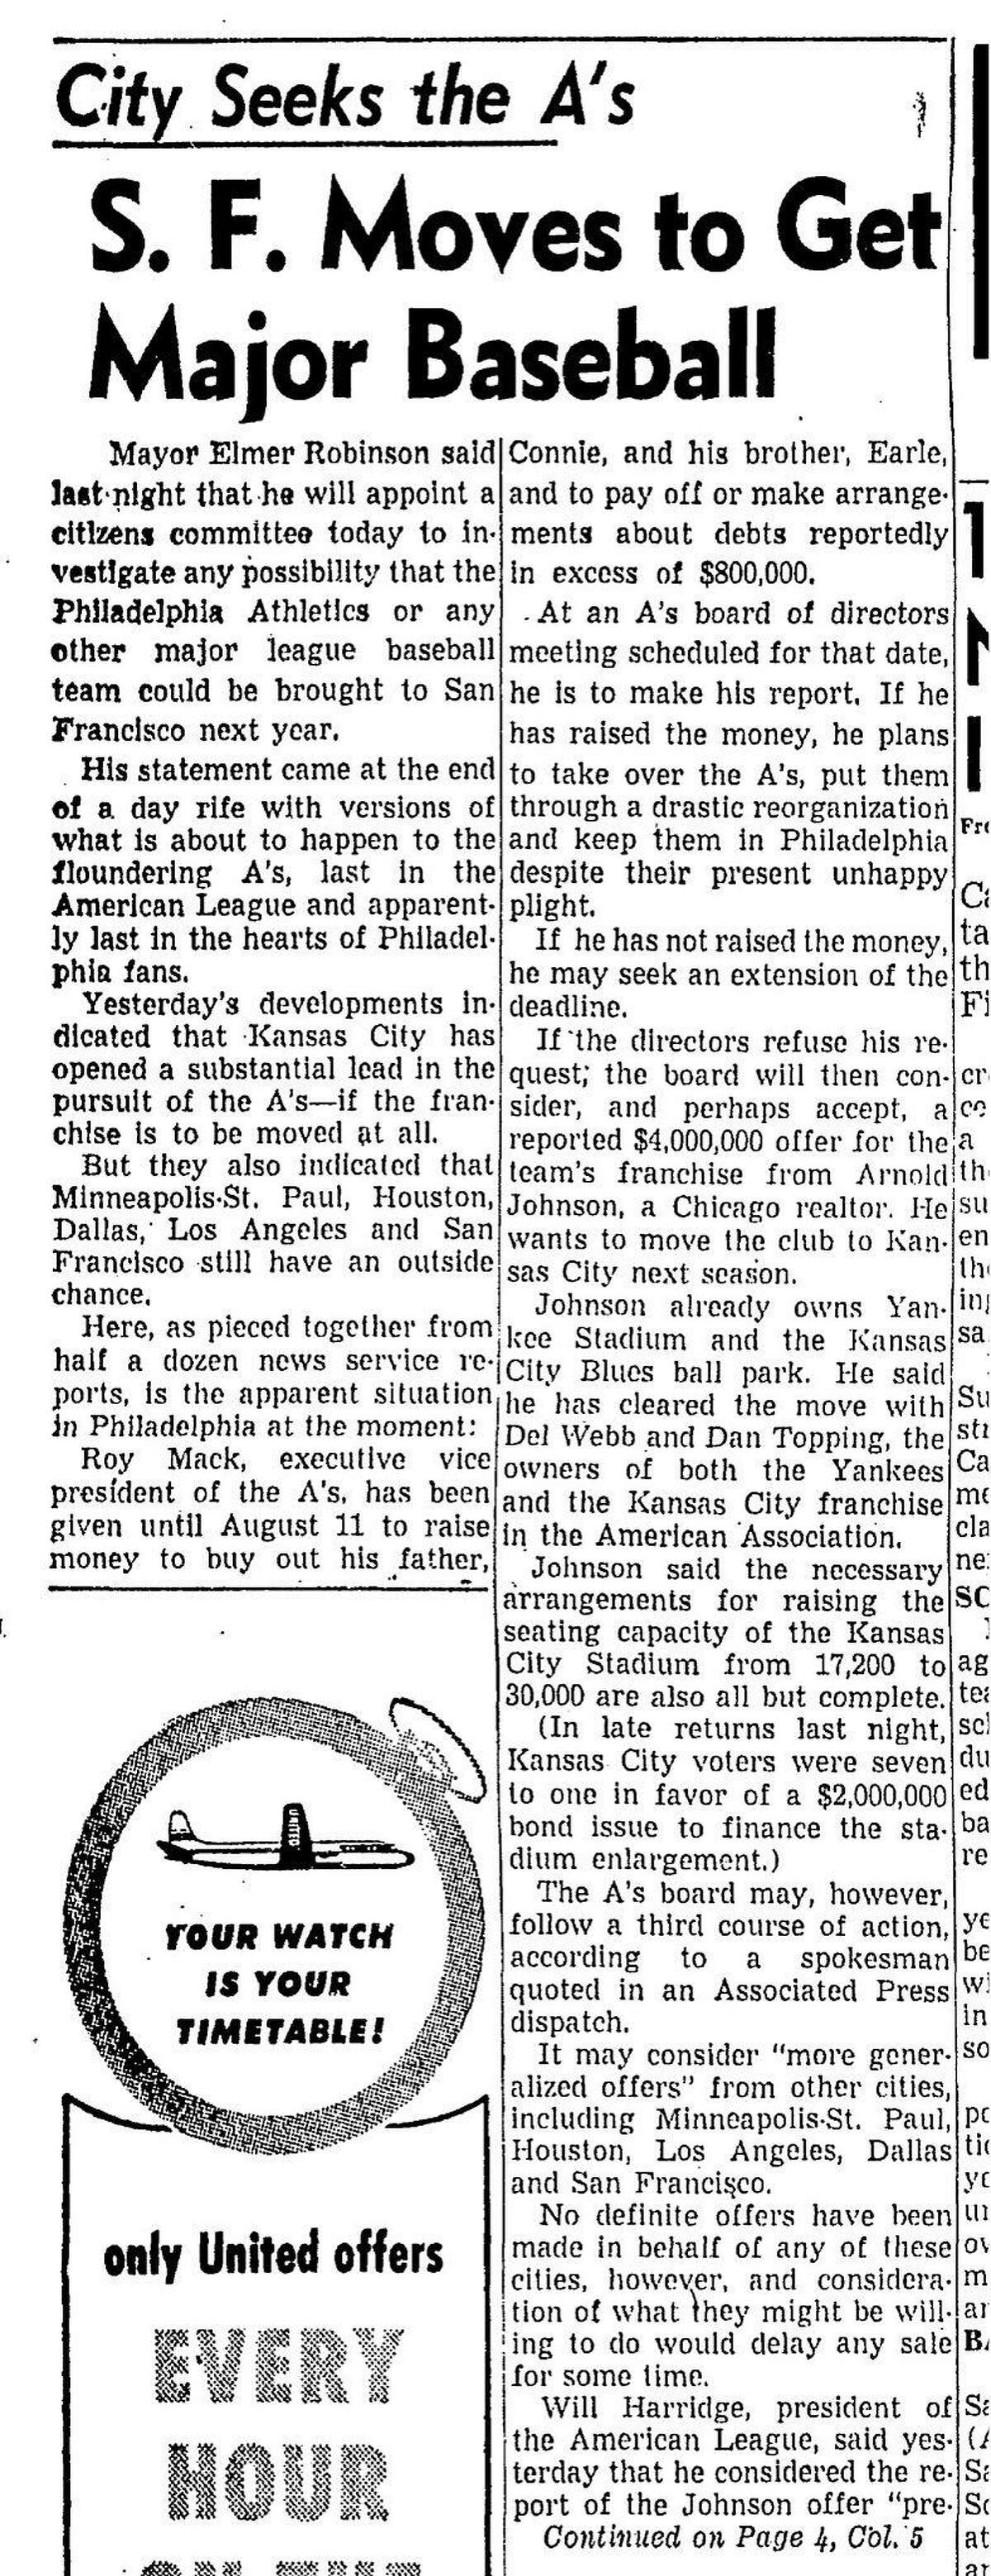 An August 4, 1954 Chronicle front page article on Mayor Elmer Robinson thought San Francisco had a shot a getting the Philadelphia A's to move here,